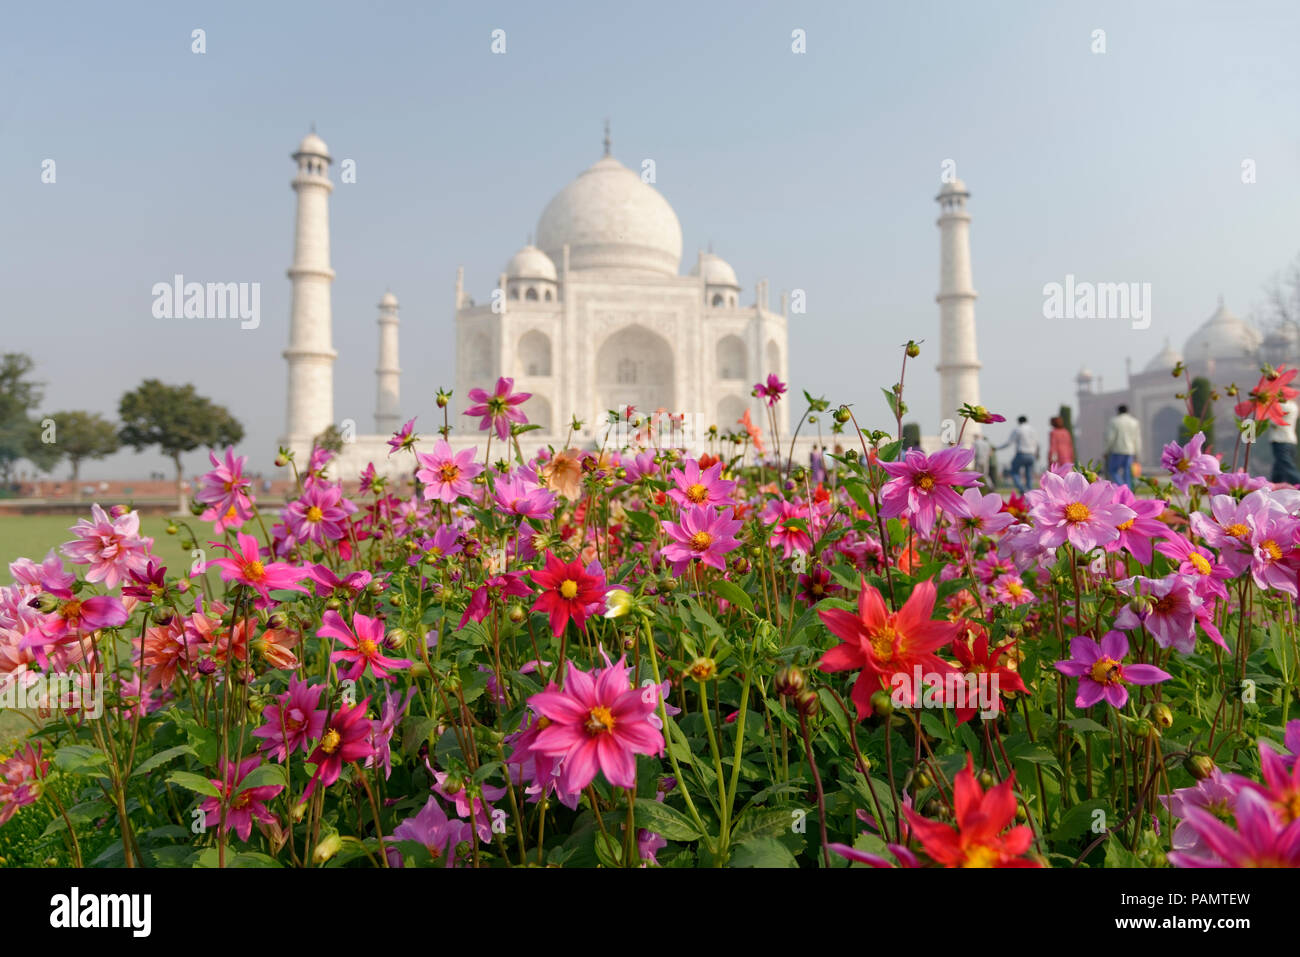 Flowers in focus on the background of OUT OF FOCUS Taj mahal at Agra A UNESCO World Heritage Site, A monument of love, Agra, Uttar Pradesh, India. - Stock Image